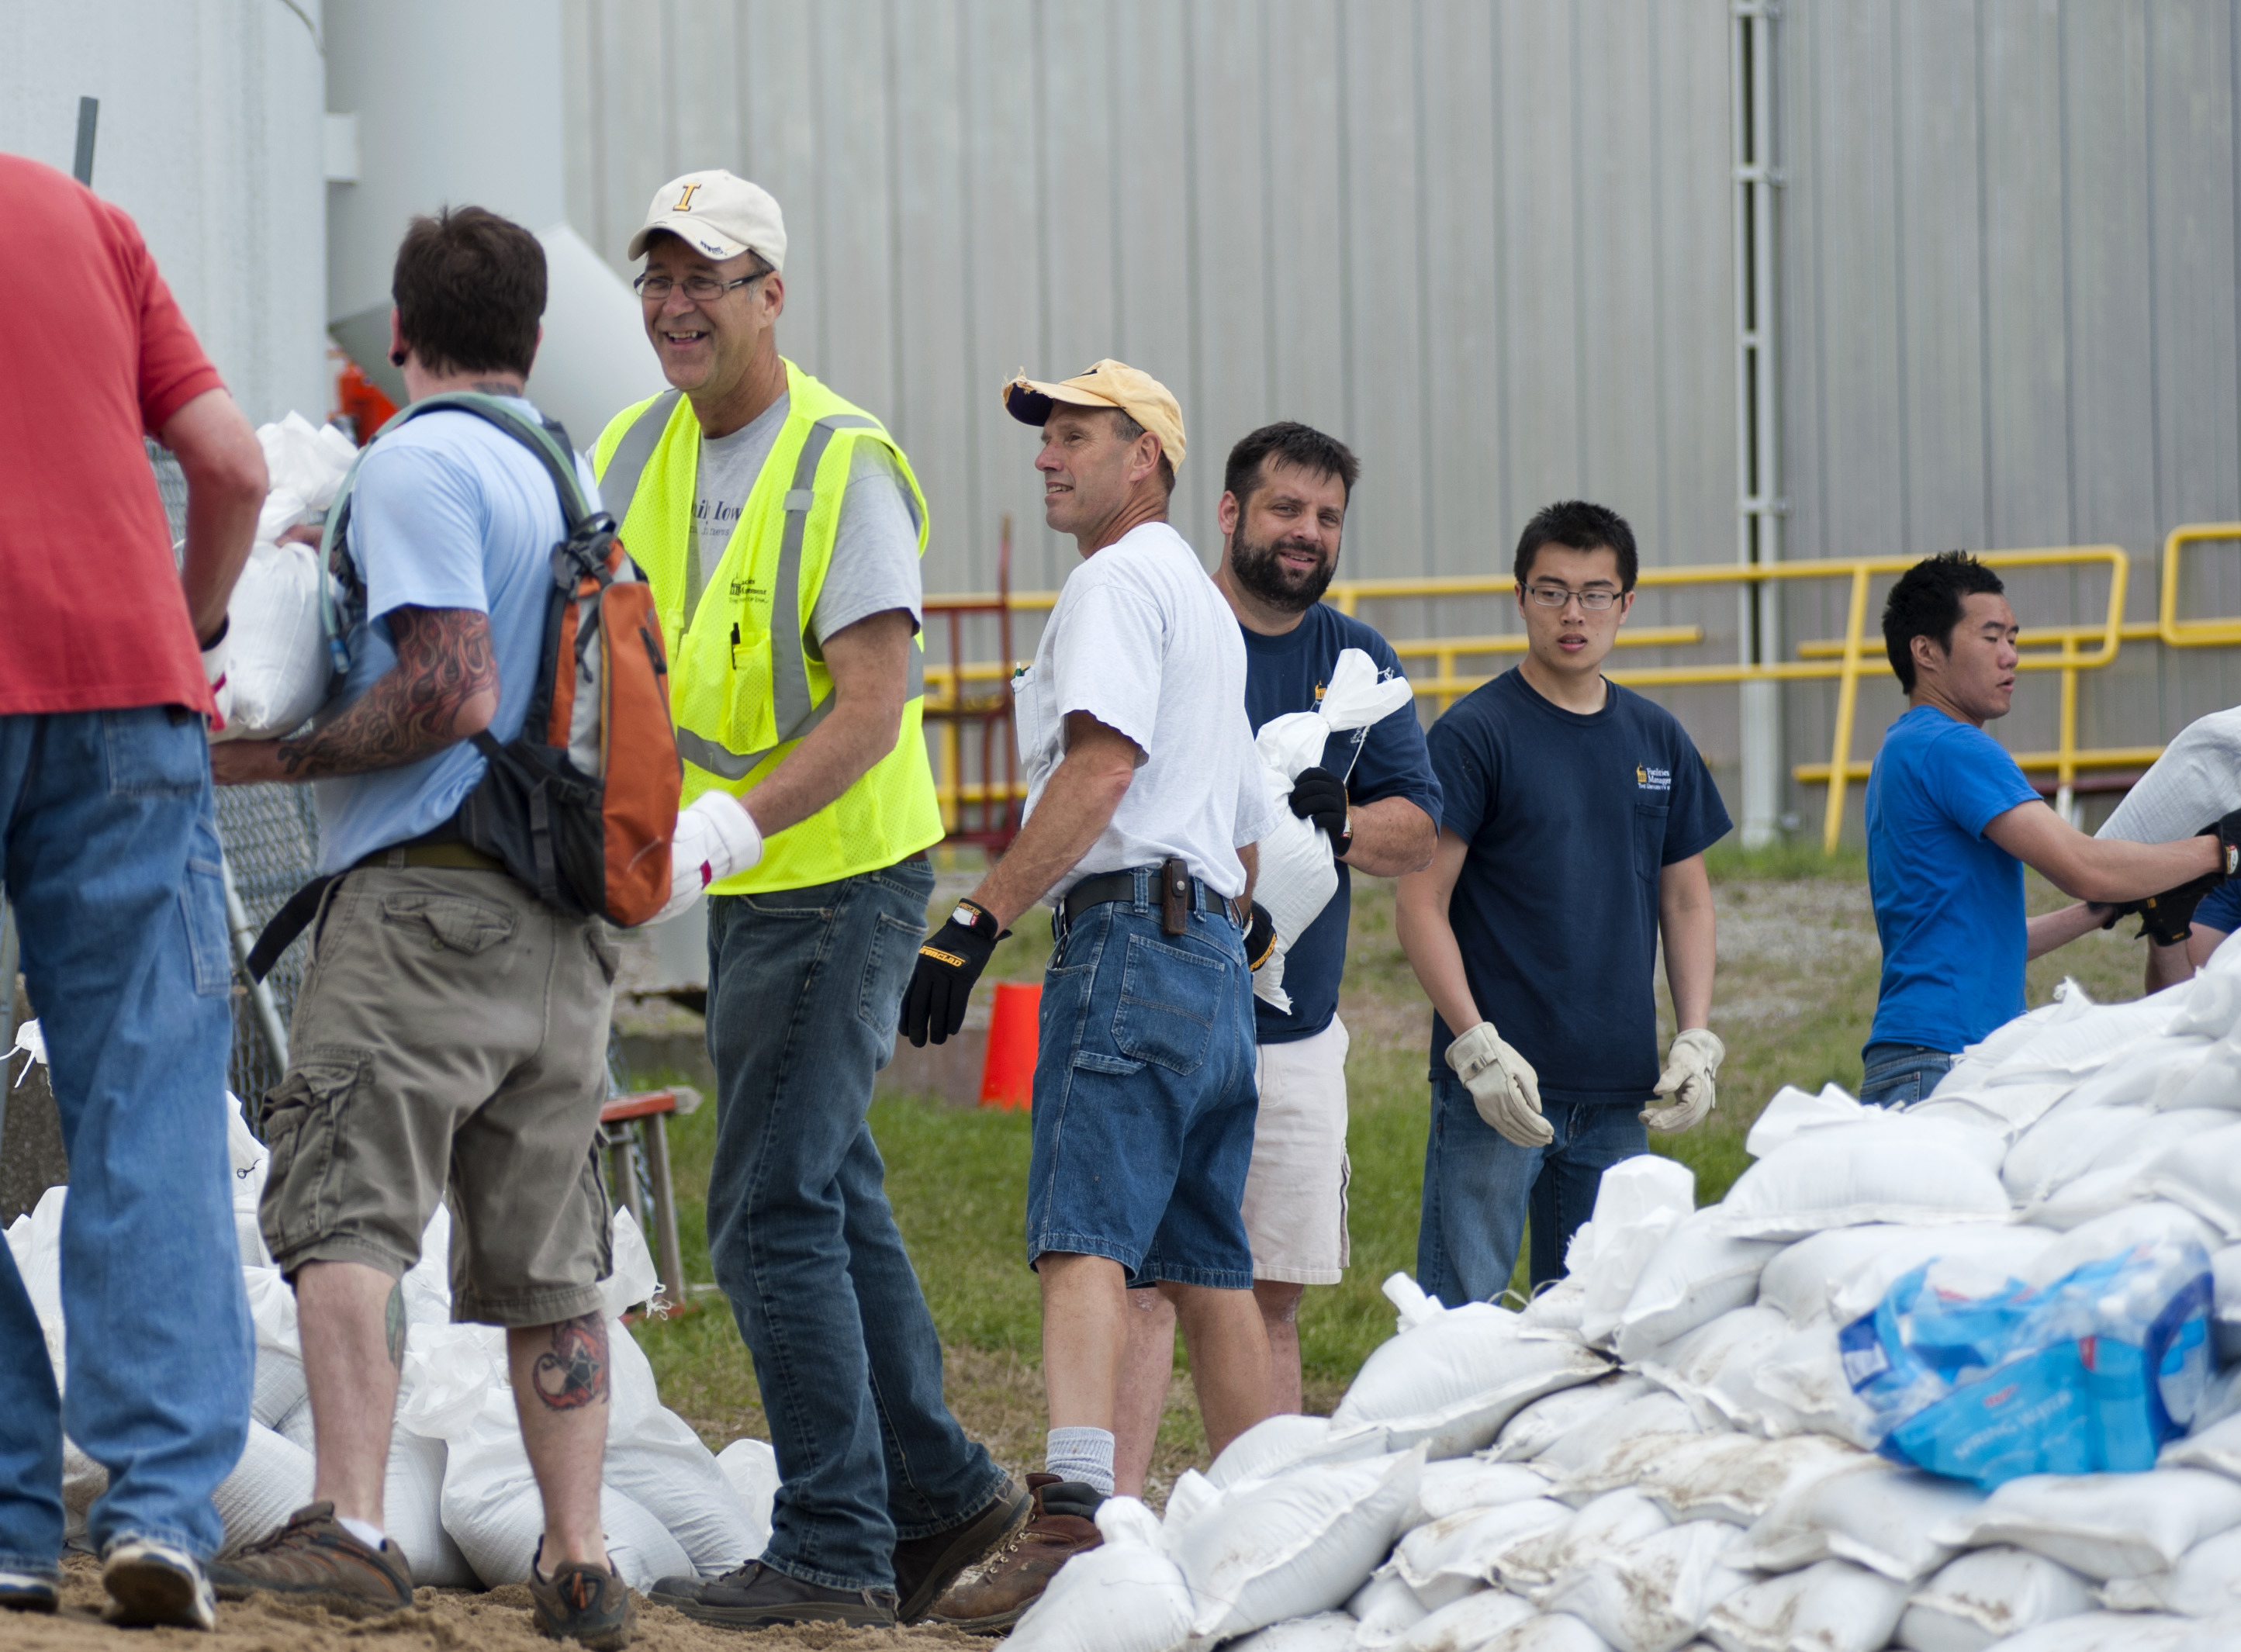 Volunteers and university employees pitch in to protect University buildings.